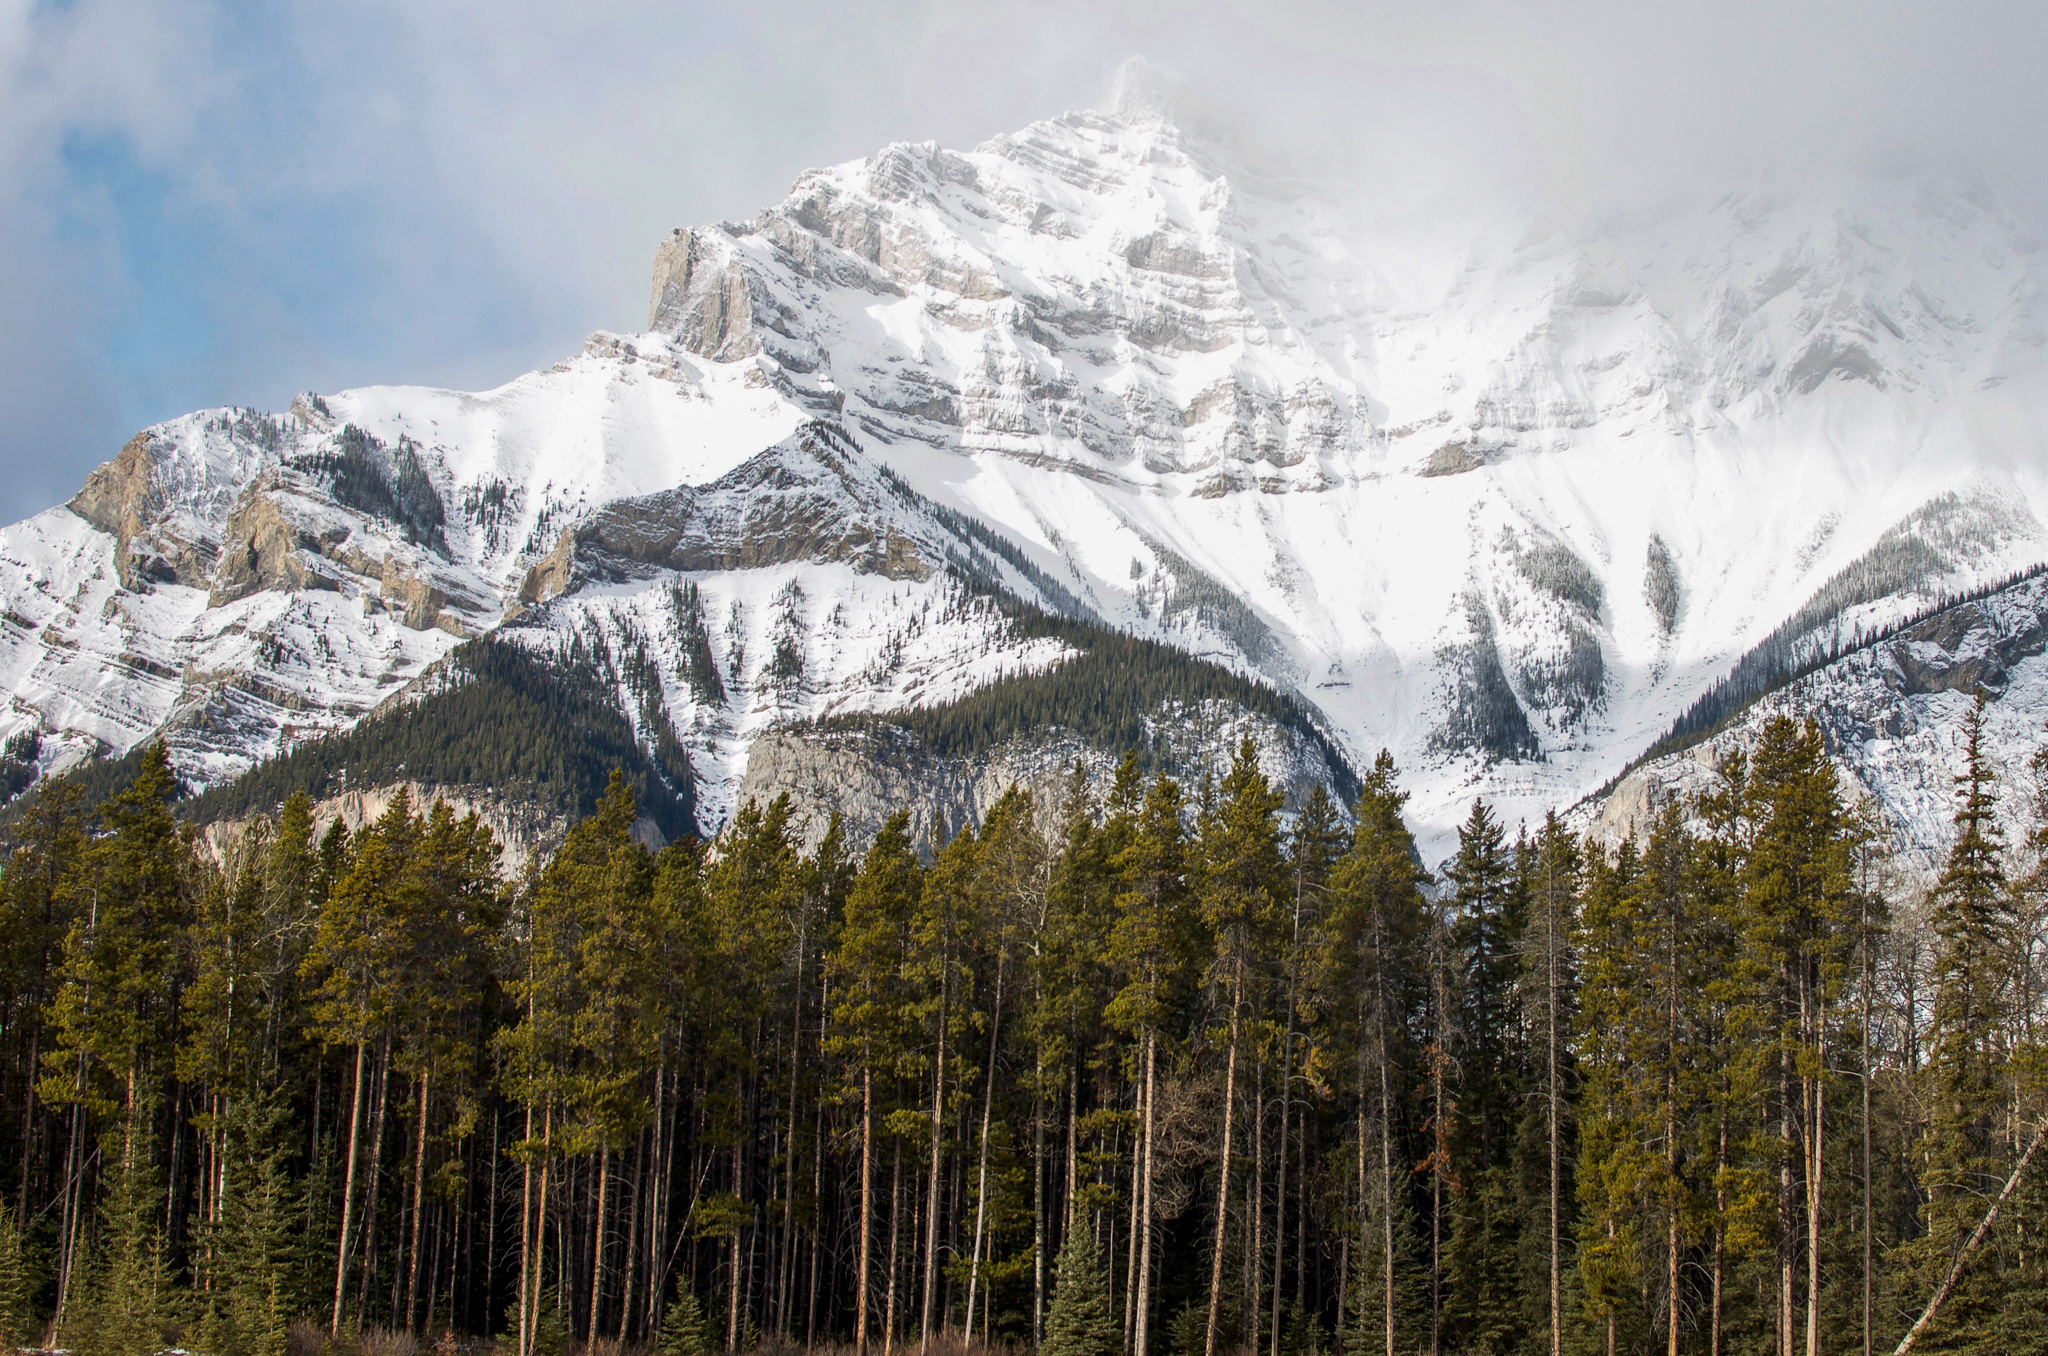 Snow covered mountain in the Canadian Rockies with jagged, misty peak. Tall and thin coniferous trees sit in front of the mountain, providing contrast.